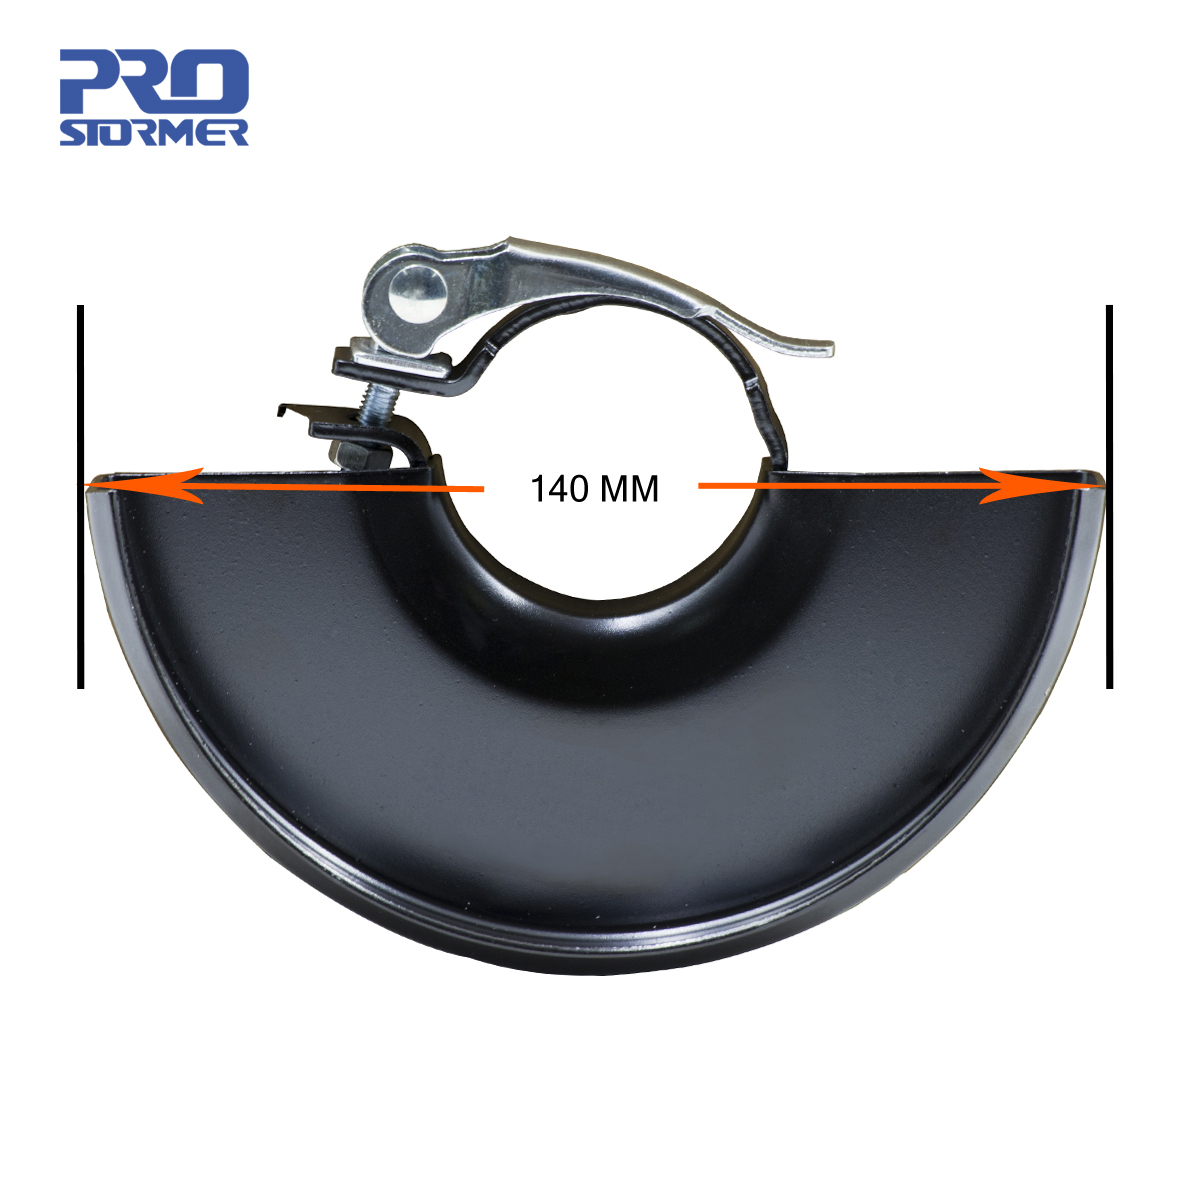 PROSTORMER 140mm Wheel Protection Cover Suitable Suitable For 125mm MAX Grinding Wheel Angle Grinding 20V PTET1016